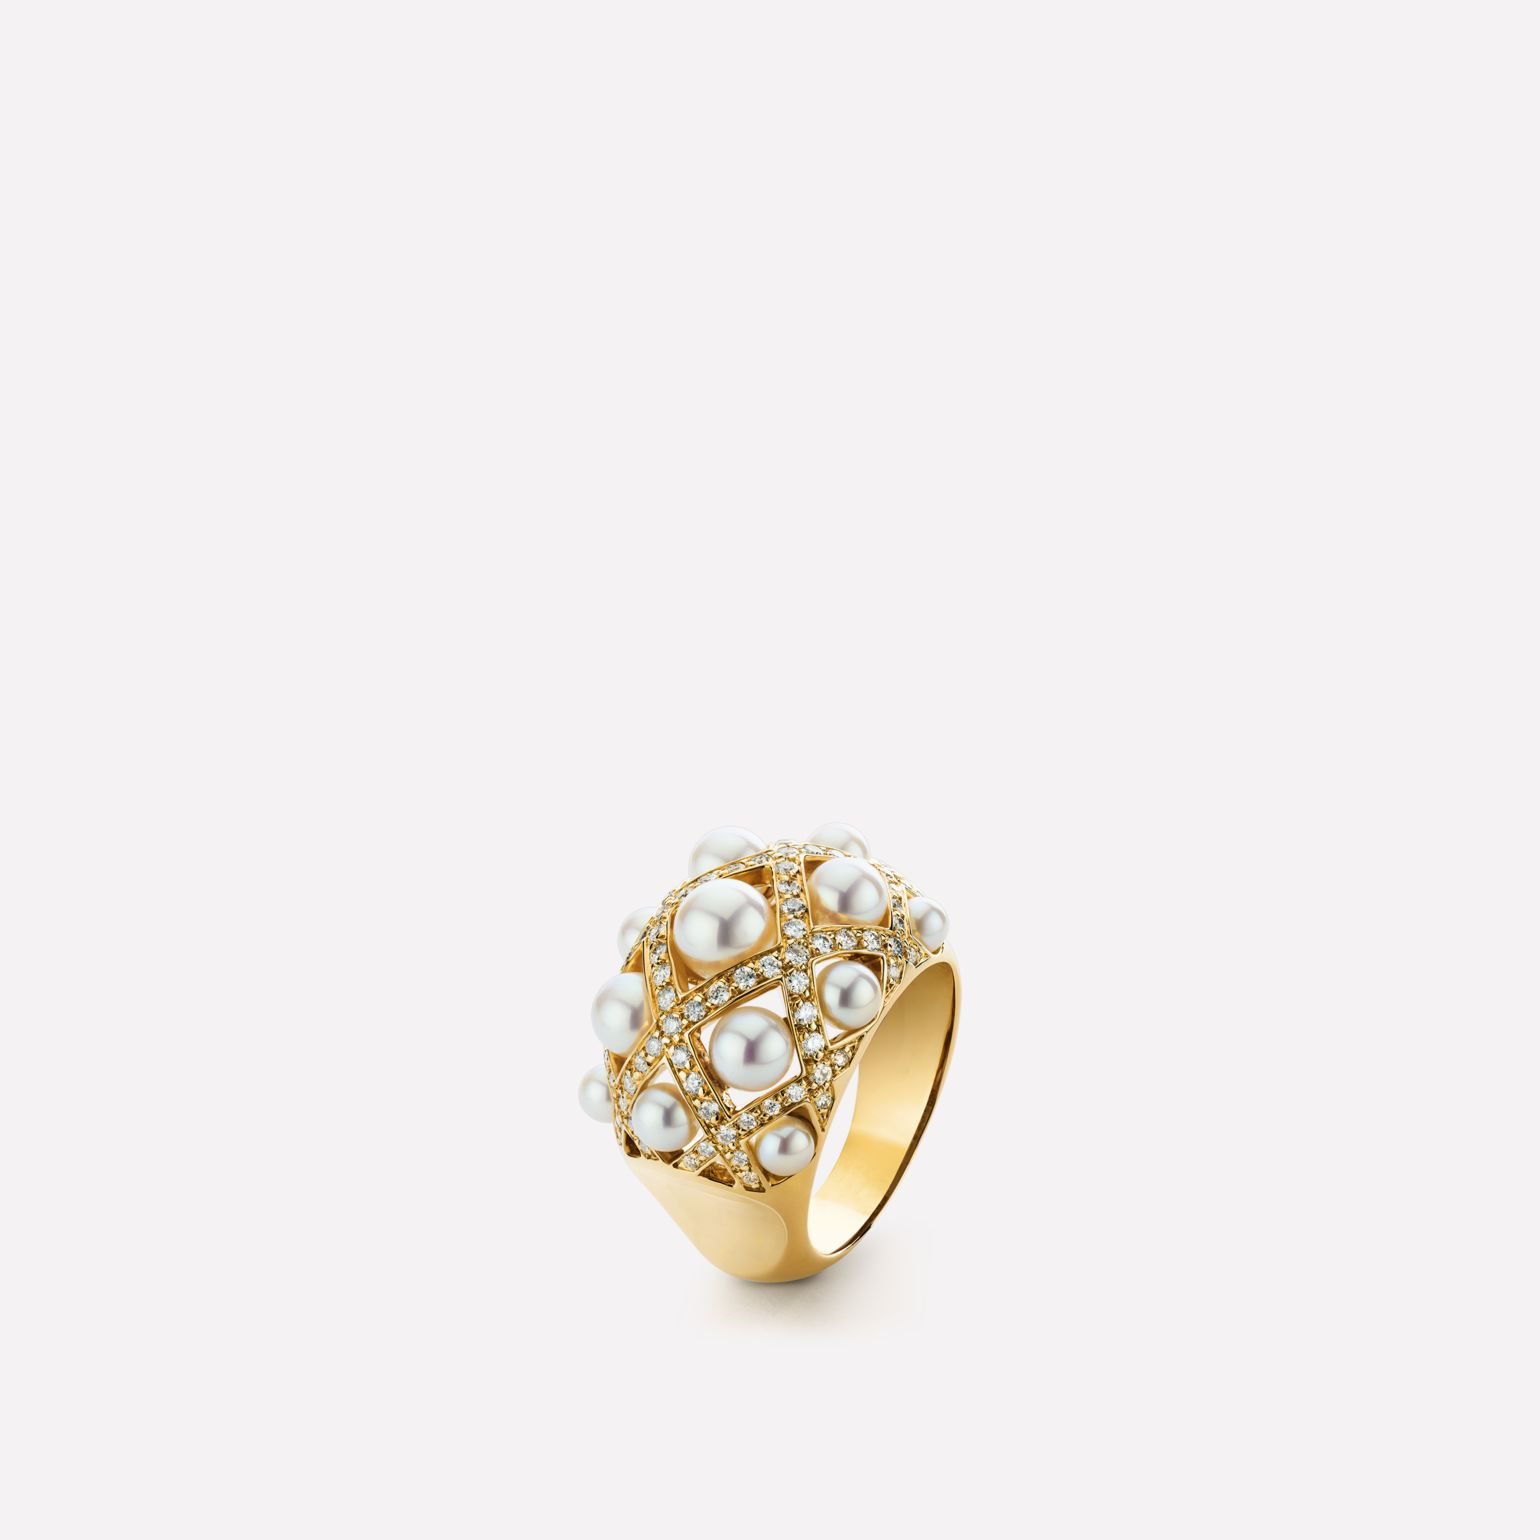 Perles Matelassé ring Medium version, 18K yellow gold, diamonds, cultured pearls